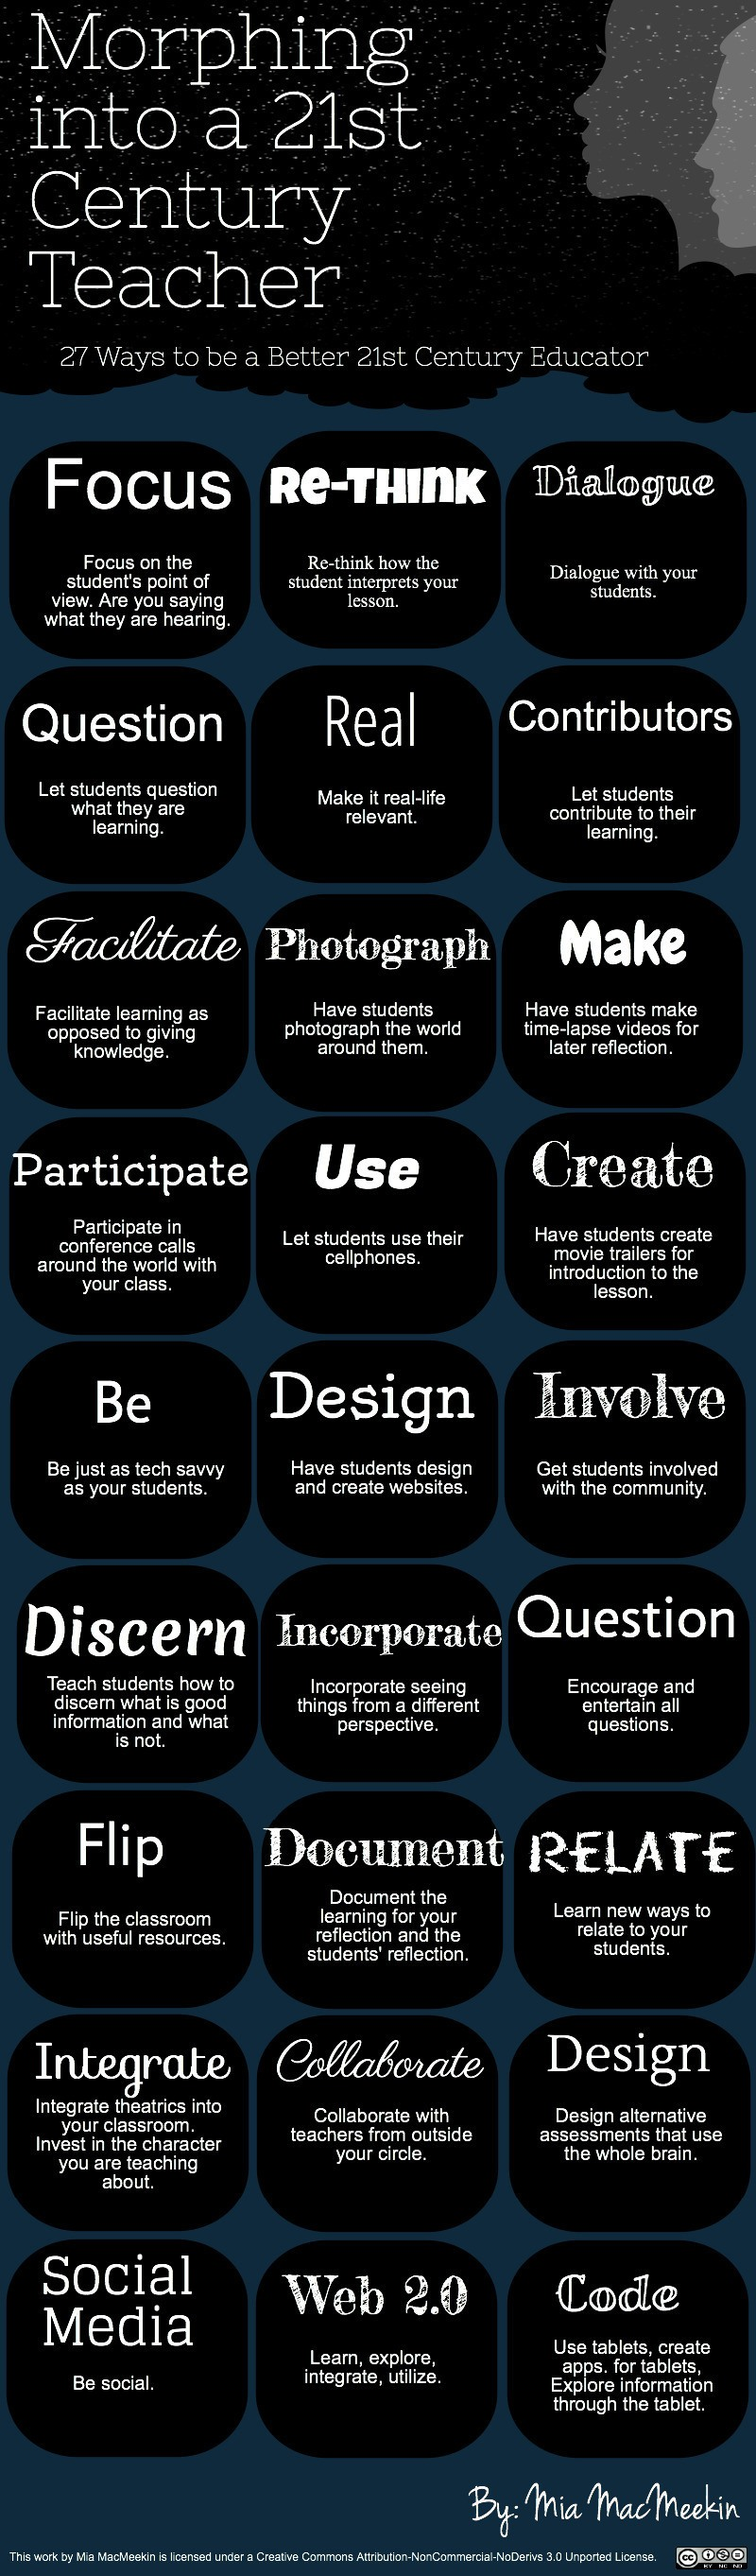 How-to-Become-a-Better-21st-Century-Teacher-Infographic